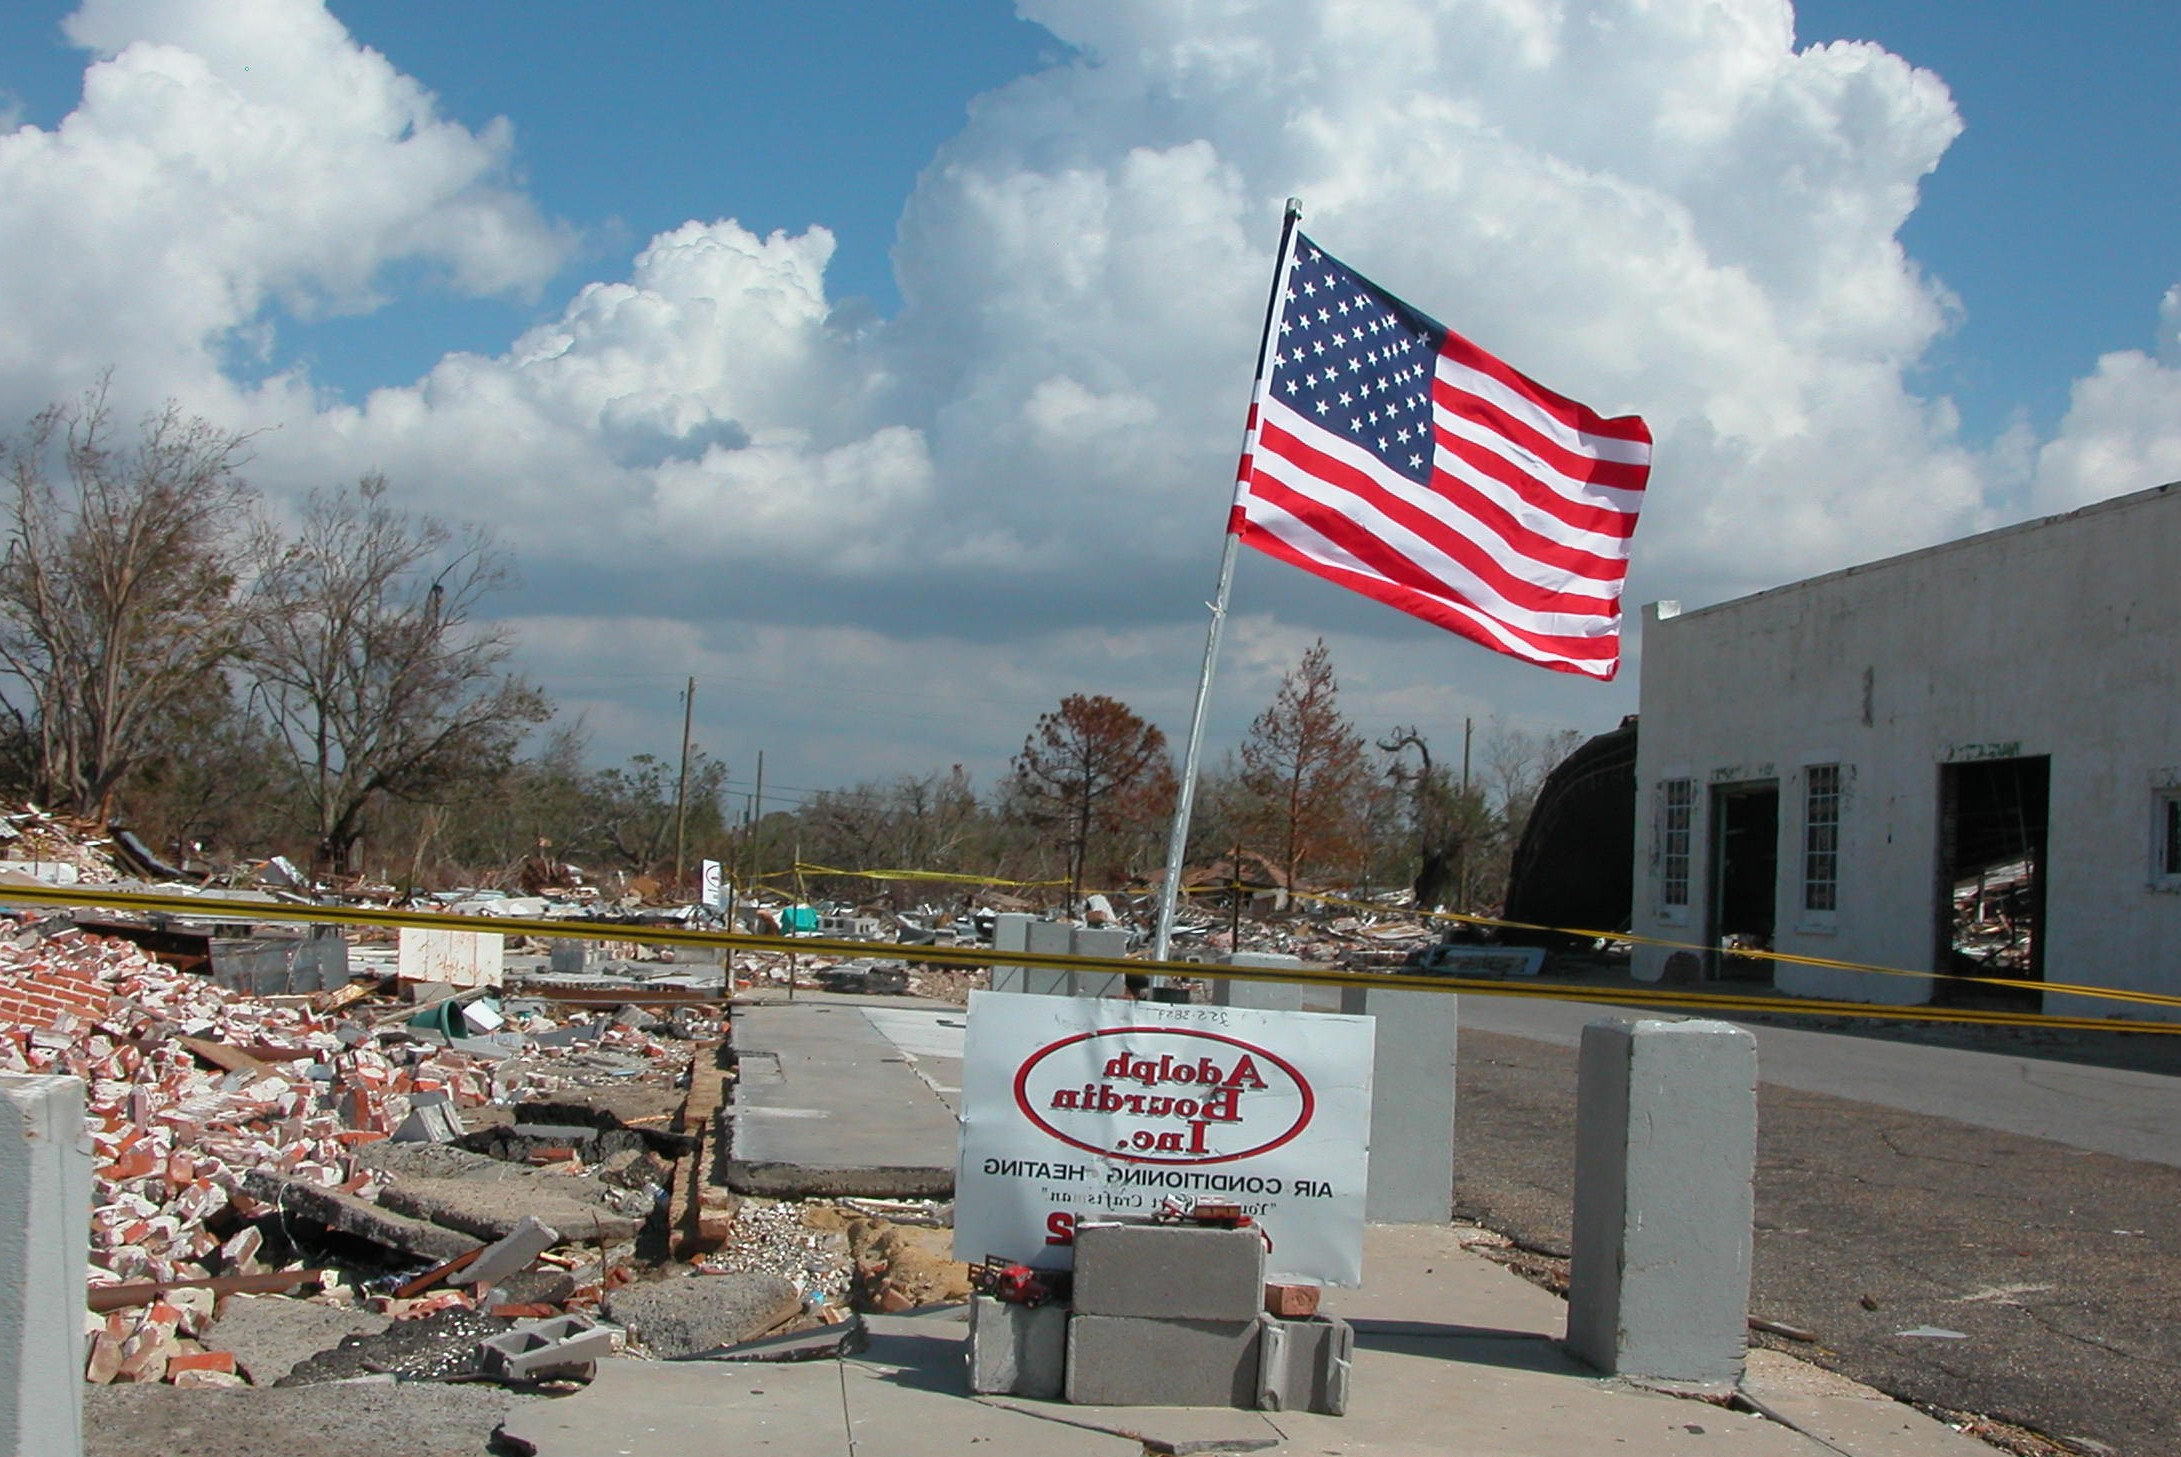 20. Residents of the coastal region placed an American flag near the debris field as an enduring symbol of hope.